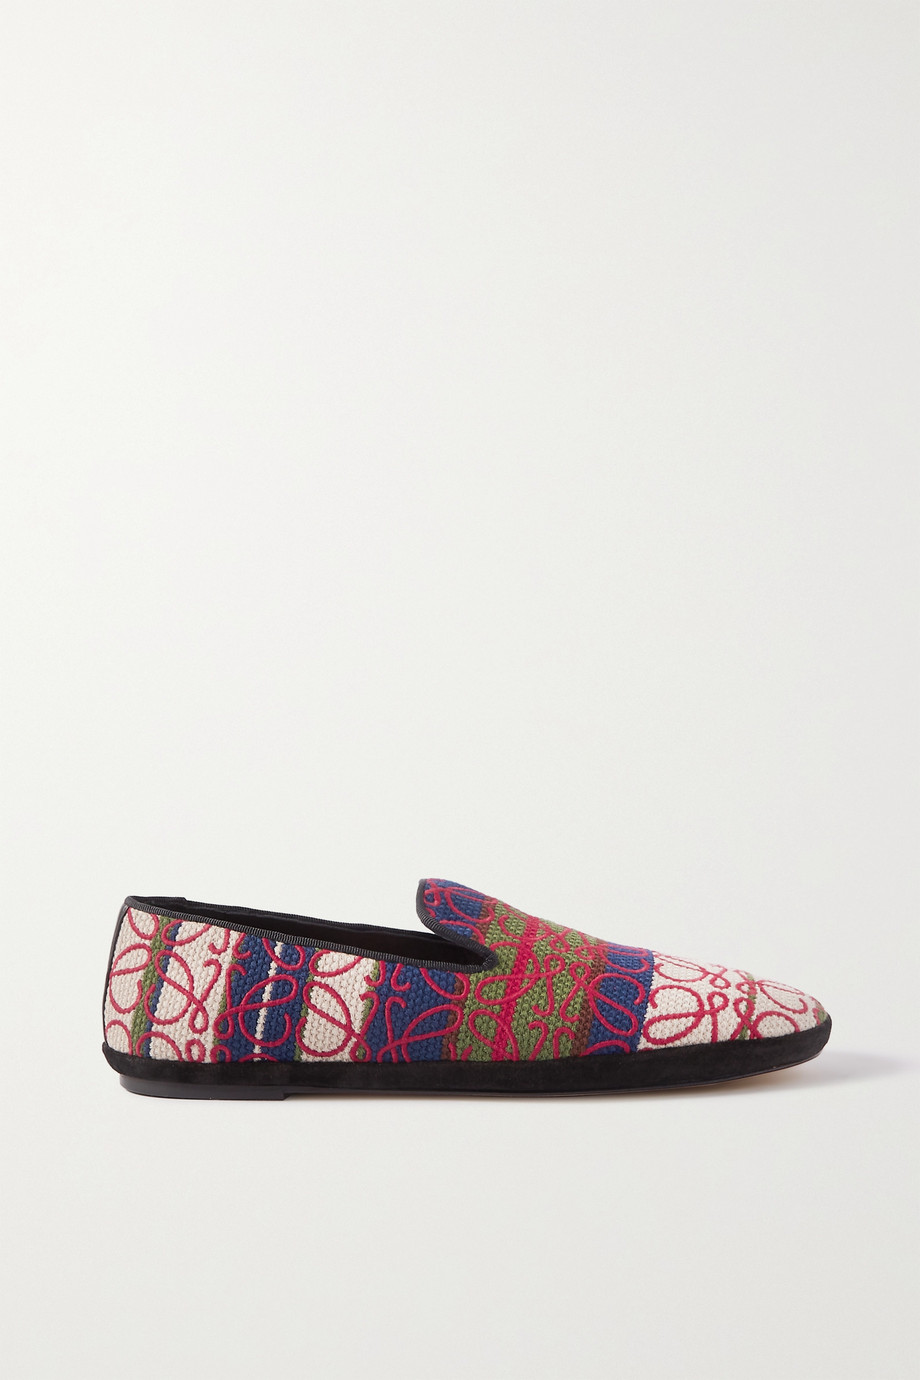 Loewe Anagram logo-embroidered canvas-jacquard loafers